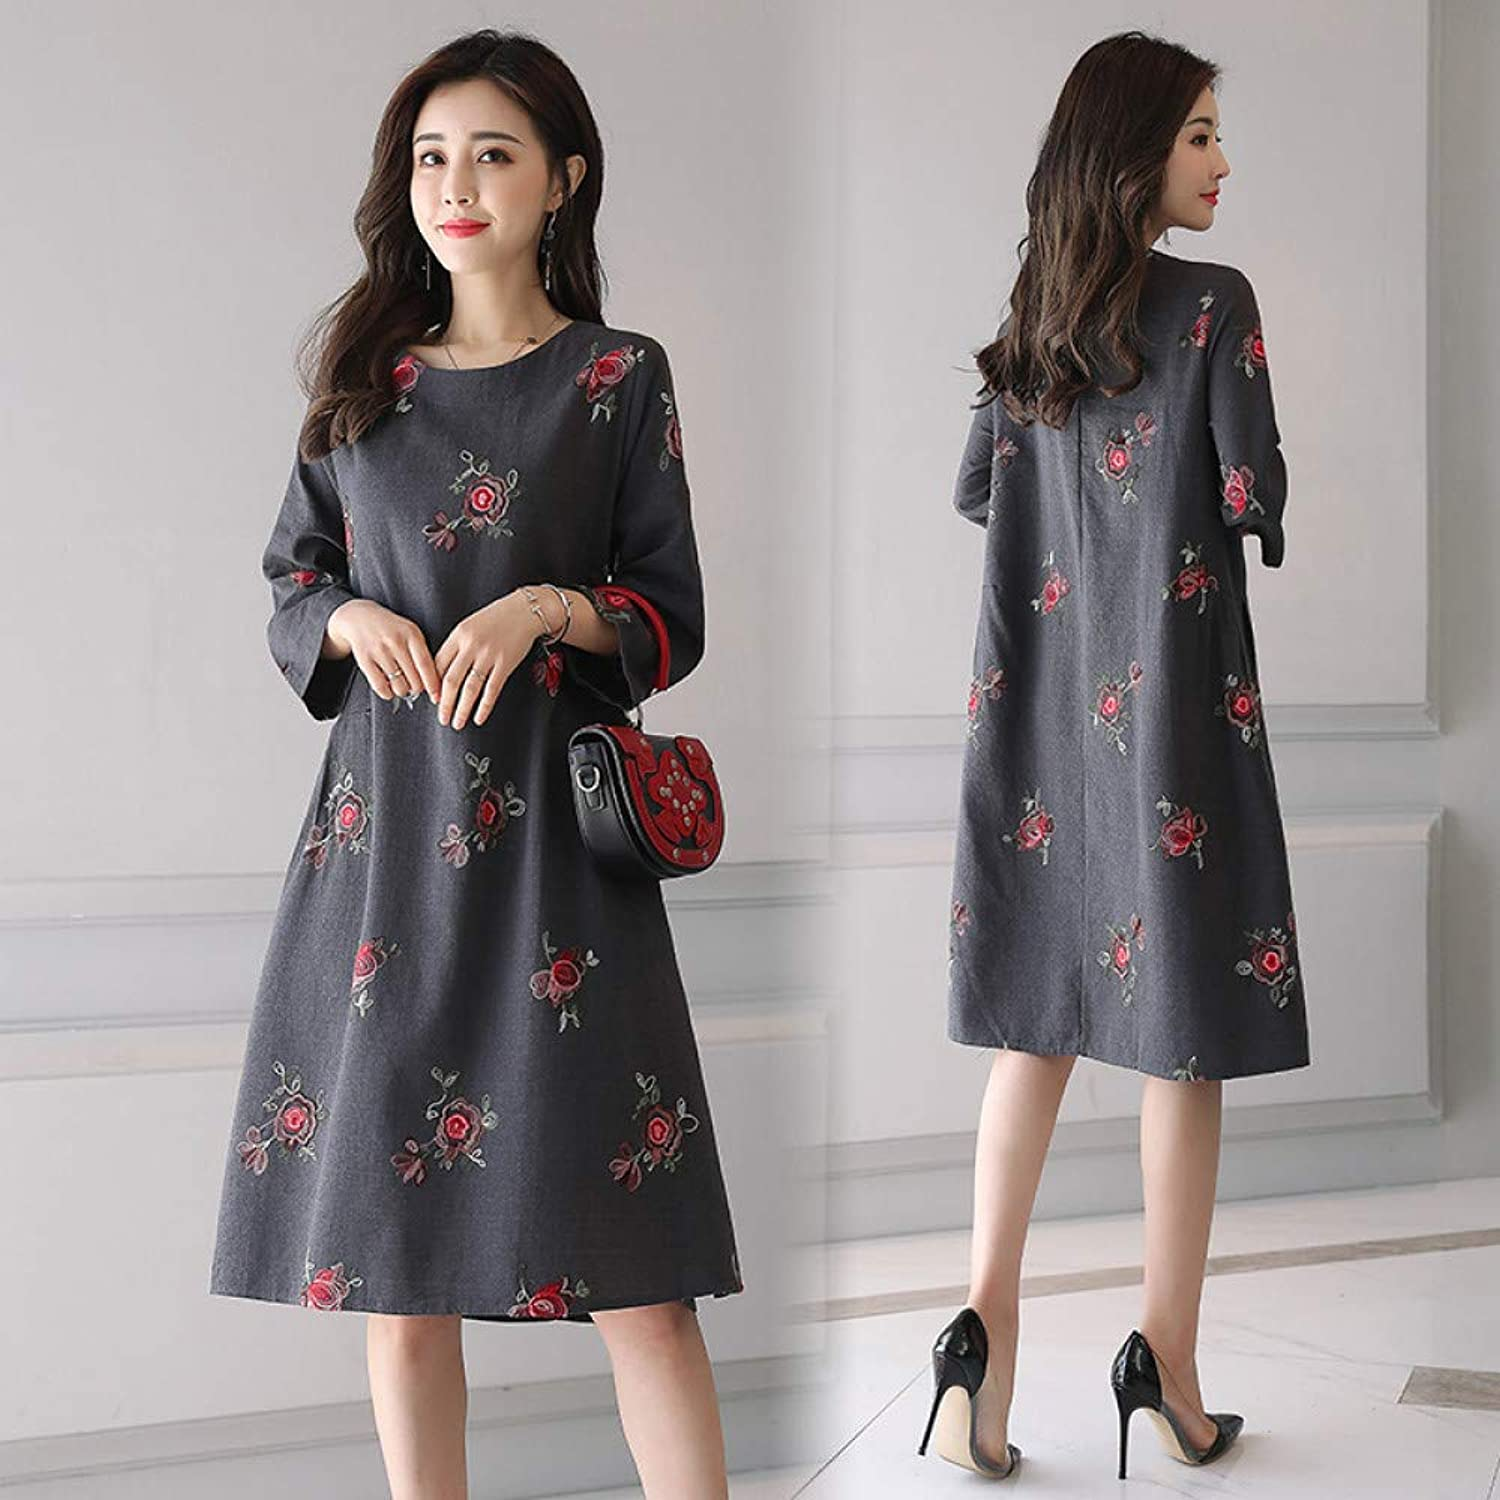 Cxlyq Dresses Large Size Jacquard Cotton and Linen Embroidered Dress Linen Pleated Slim Retro Women's Clothing